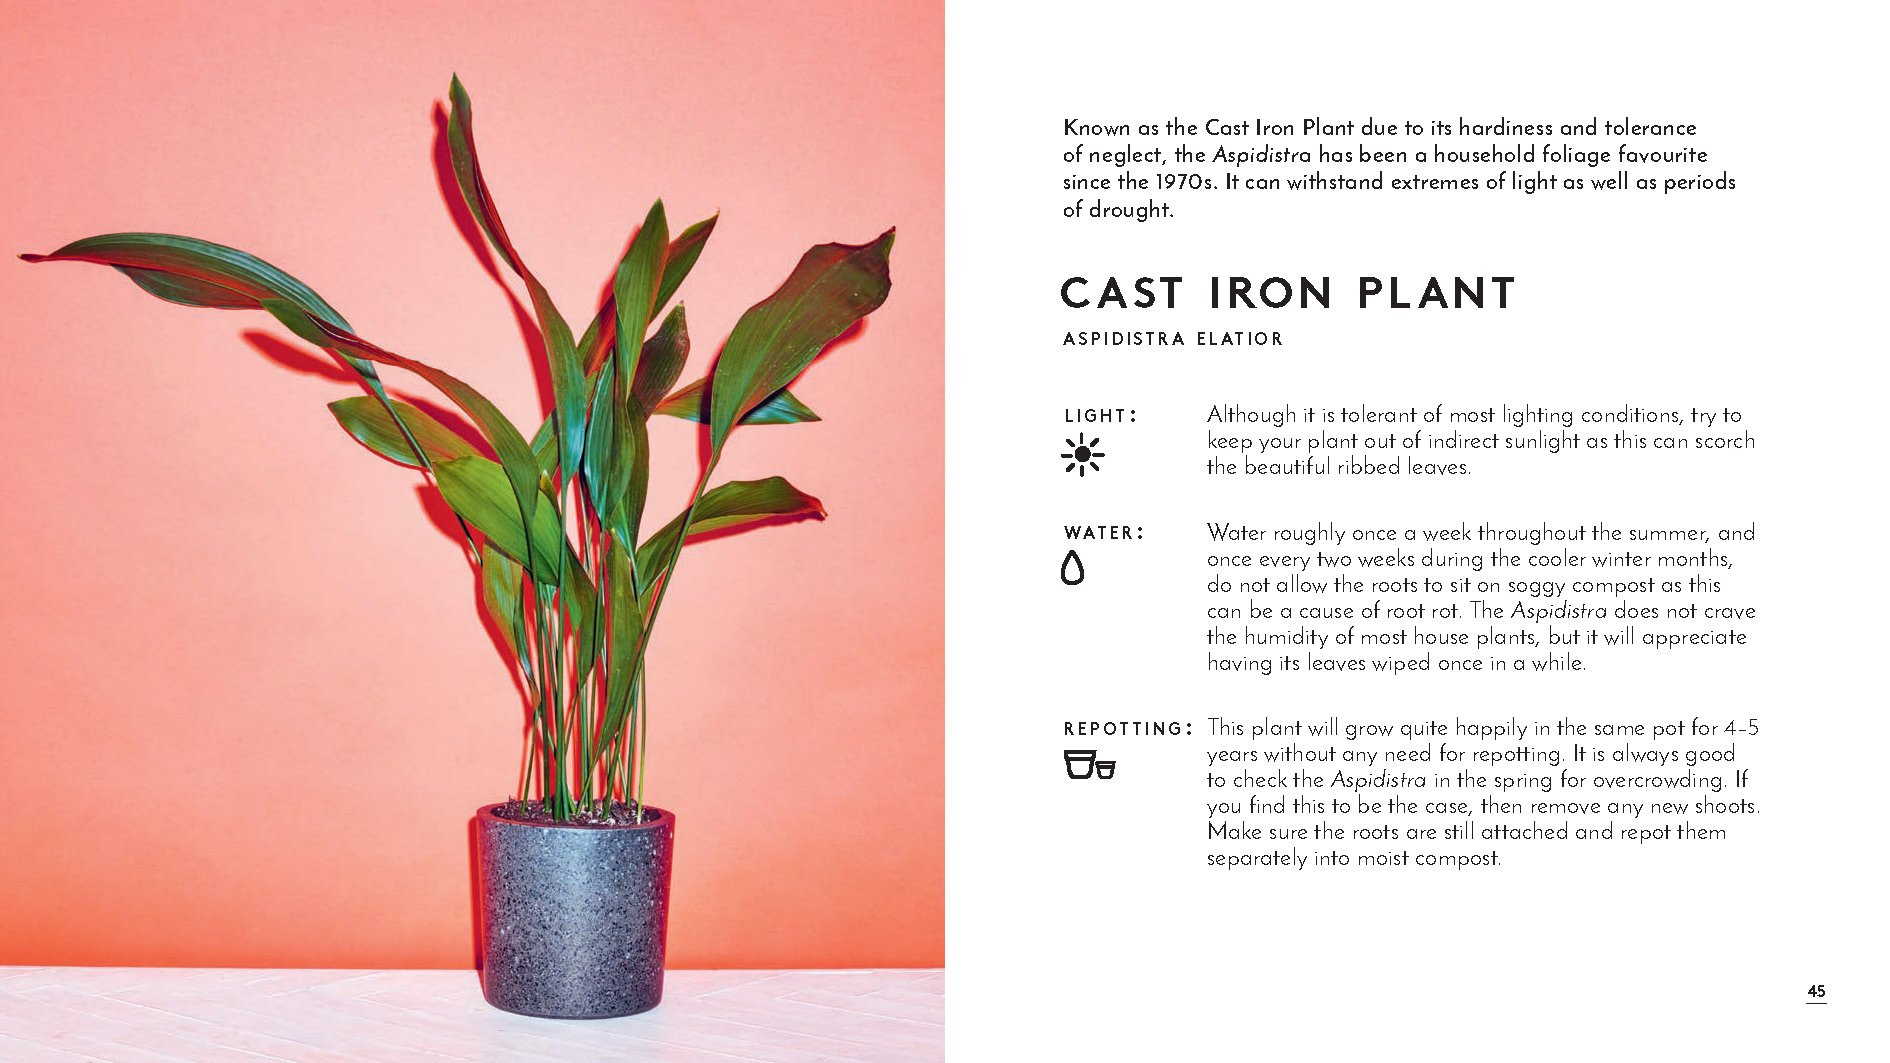 The Little Book of House Plants and Other Greenery